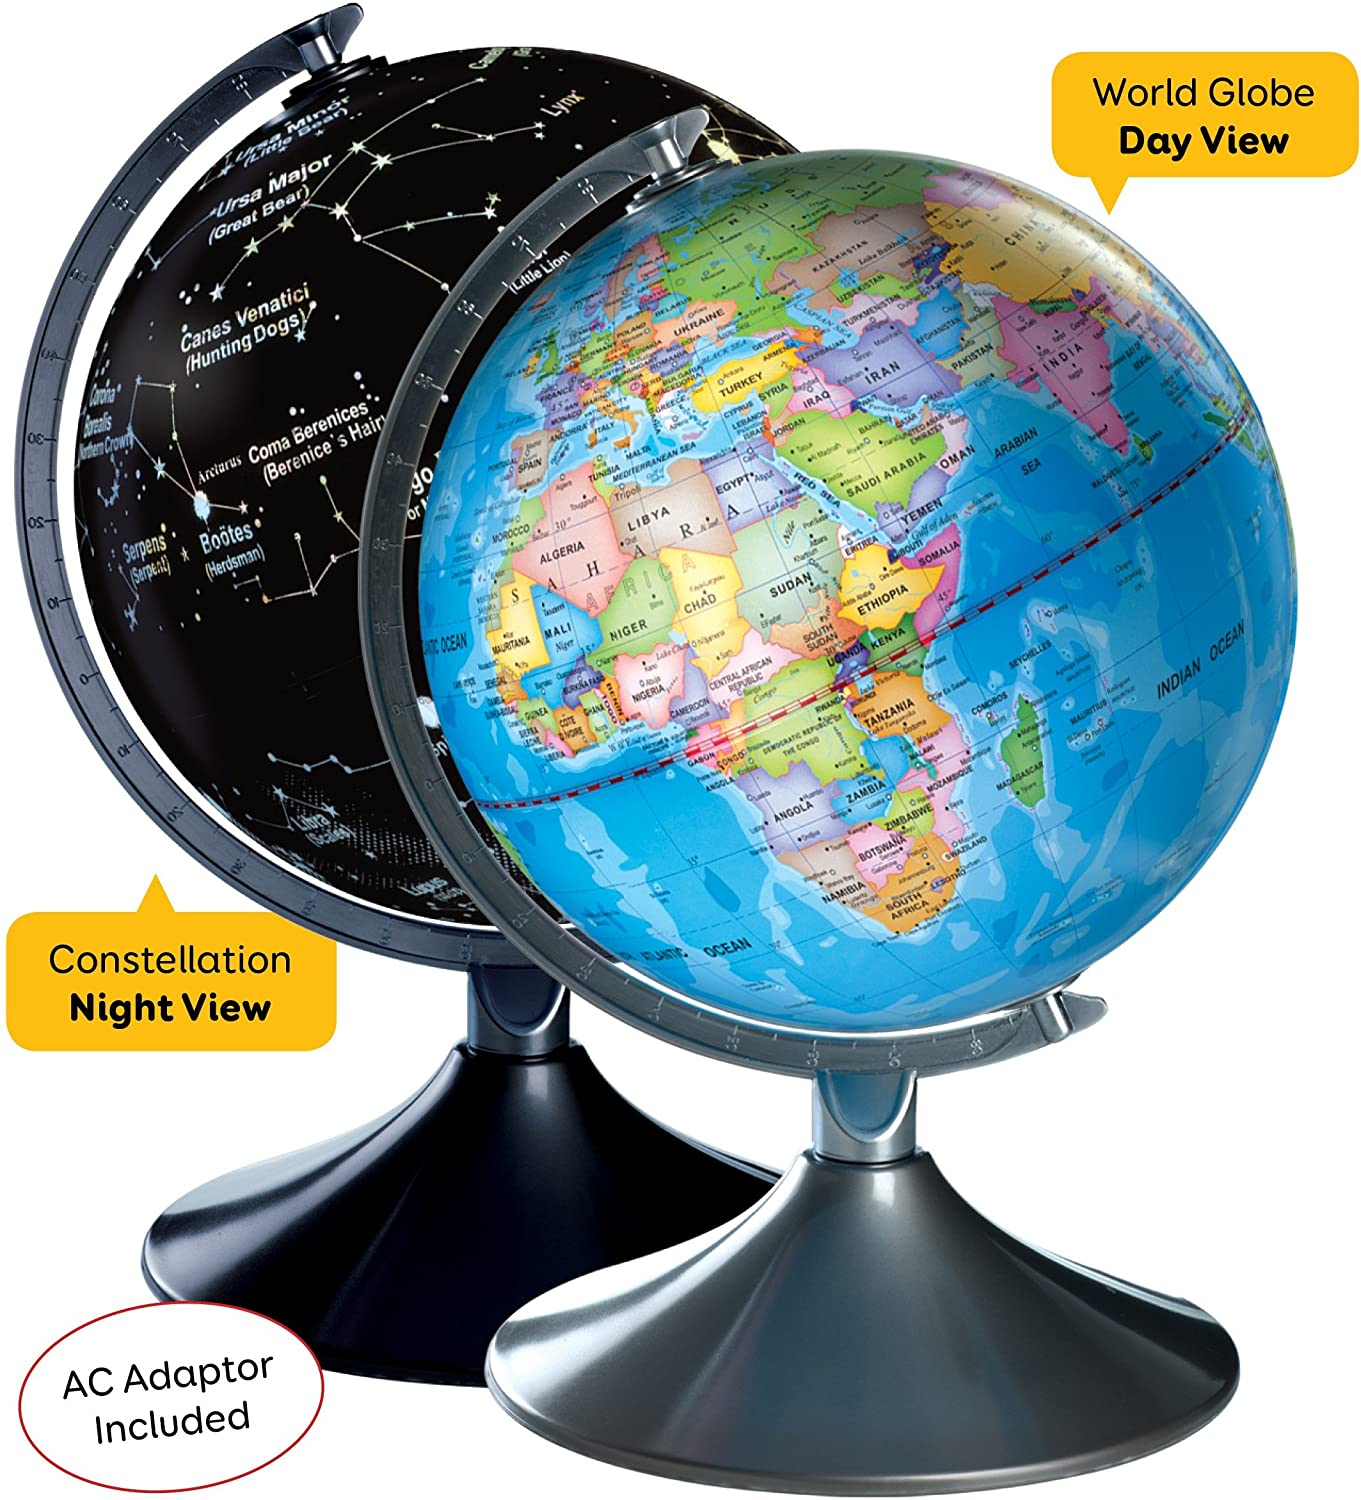 Interactive World Illuminated Globe for Kids - 2-in-1 Standing Political Earth Sphere by Day & Glowing Star Constellation Map at Night - AC Adapter Included